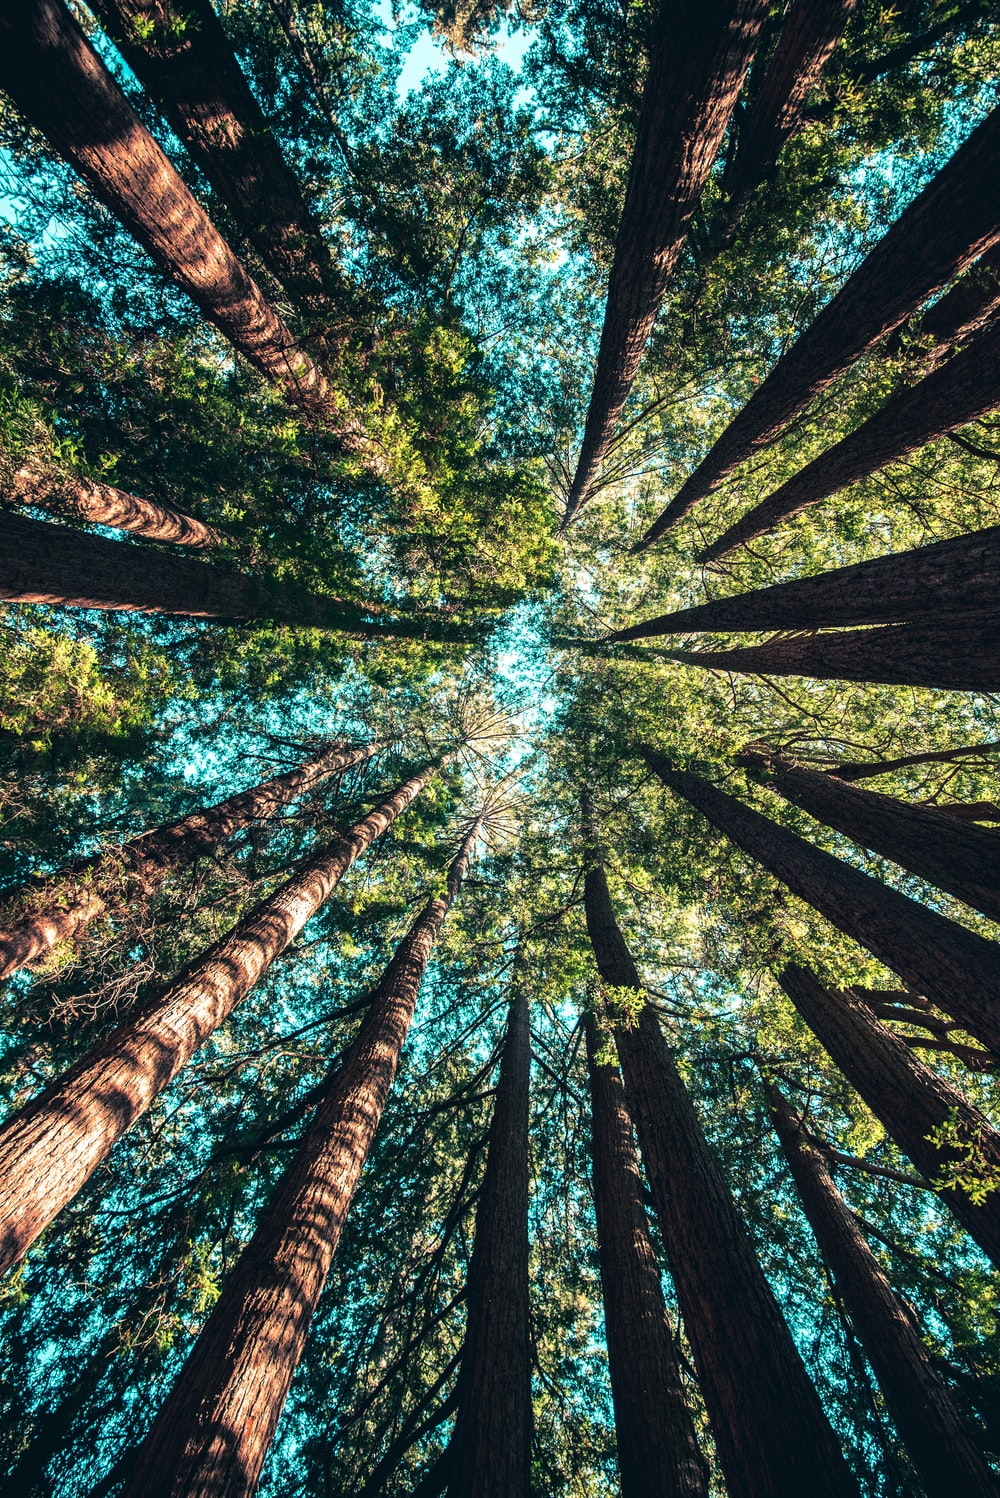 stunning forest pictures hq download free images on unsplash